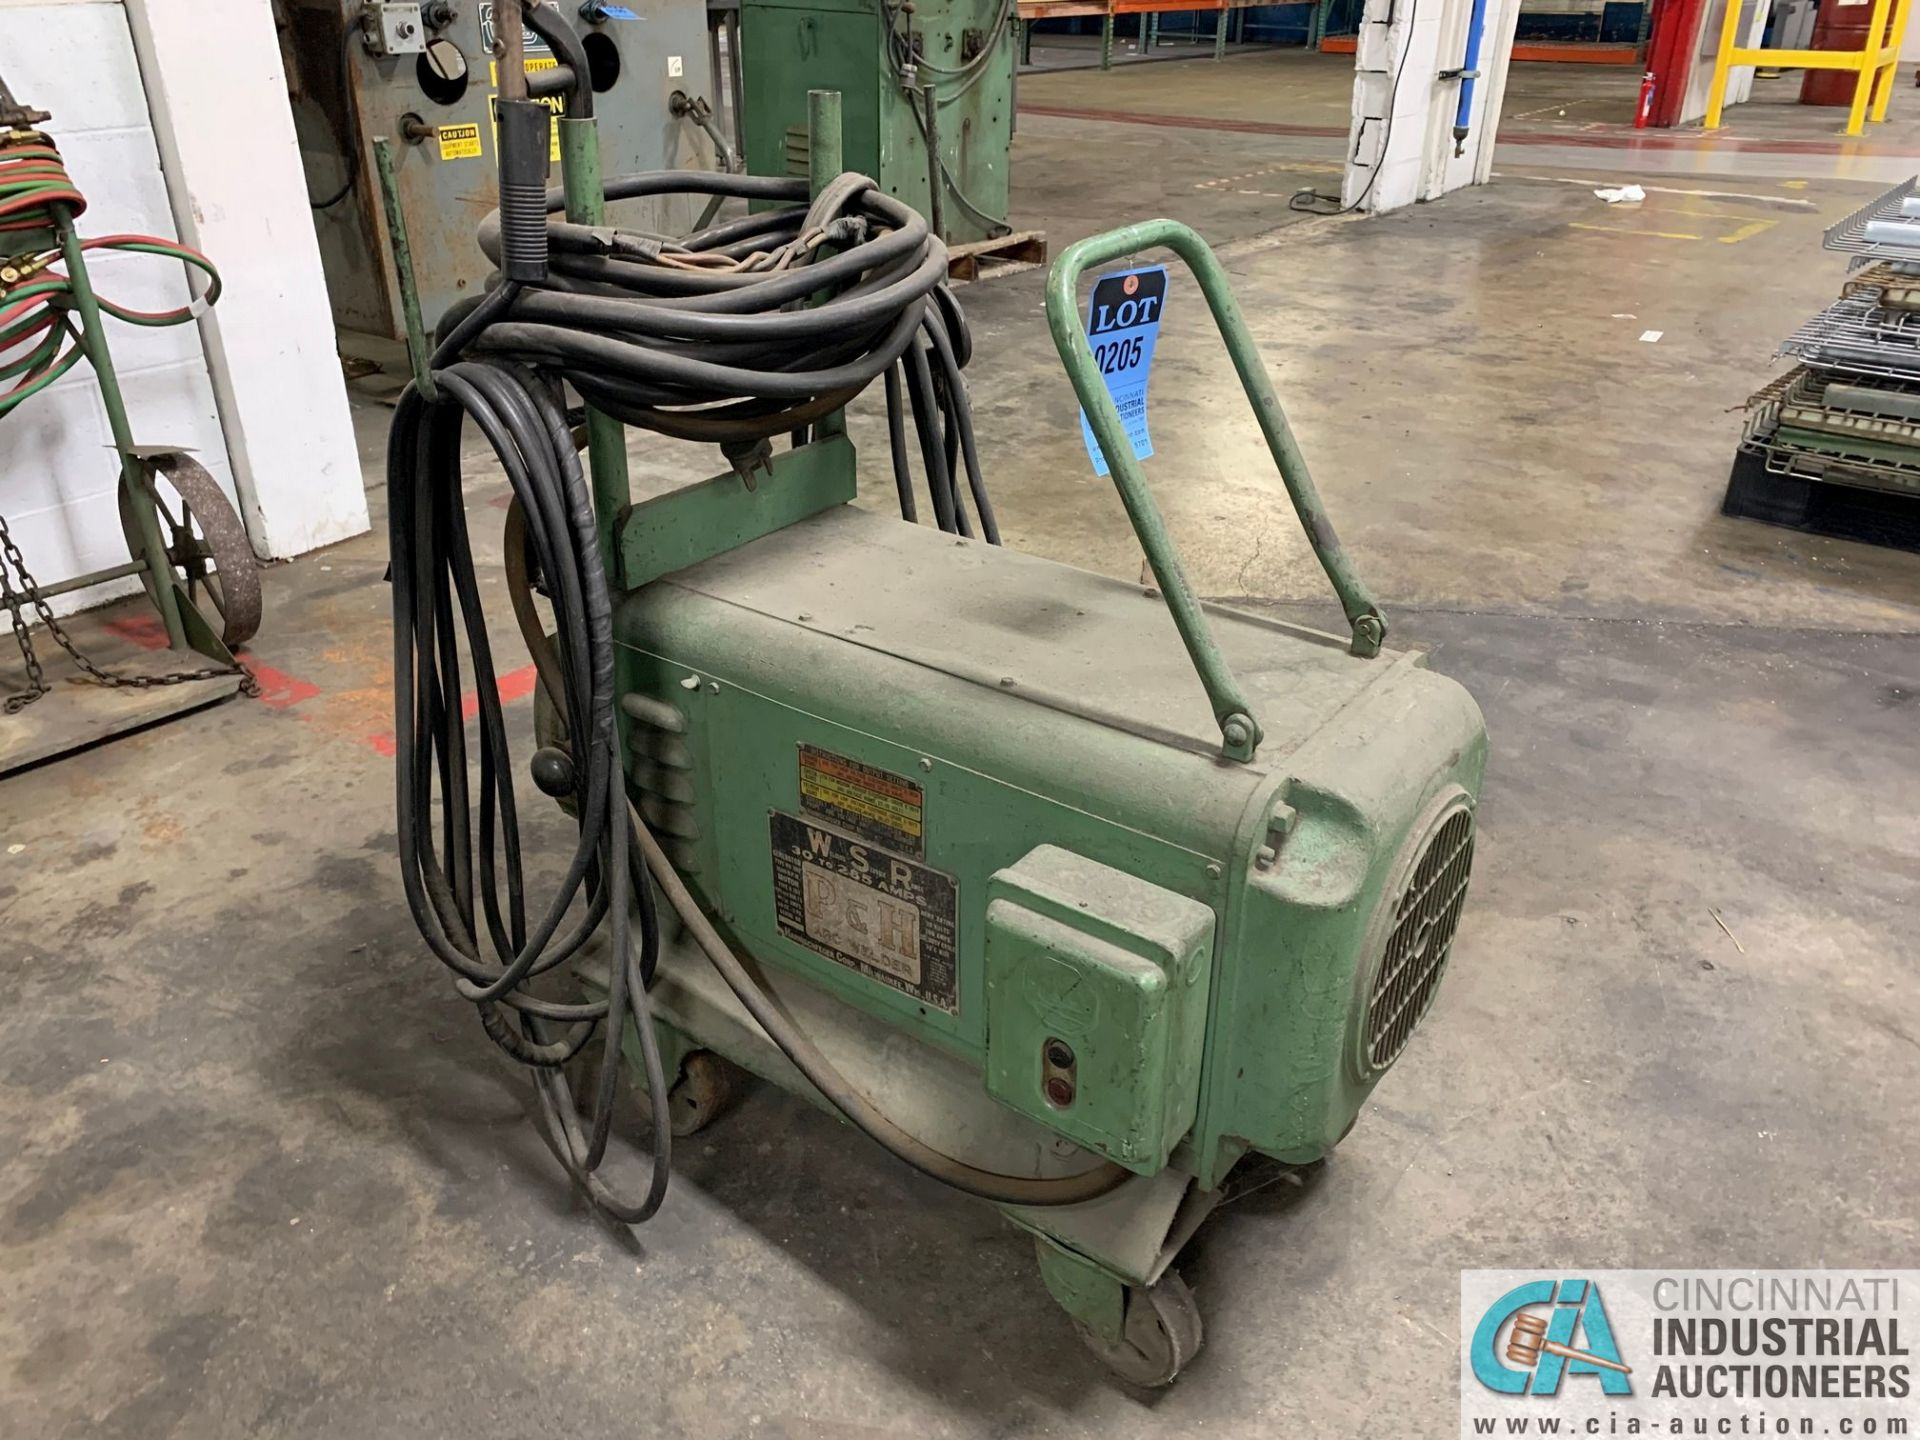 P&H ARC WELDER